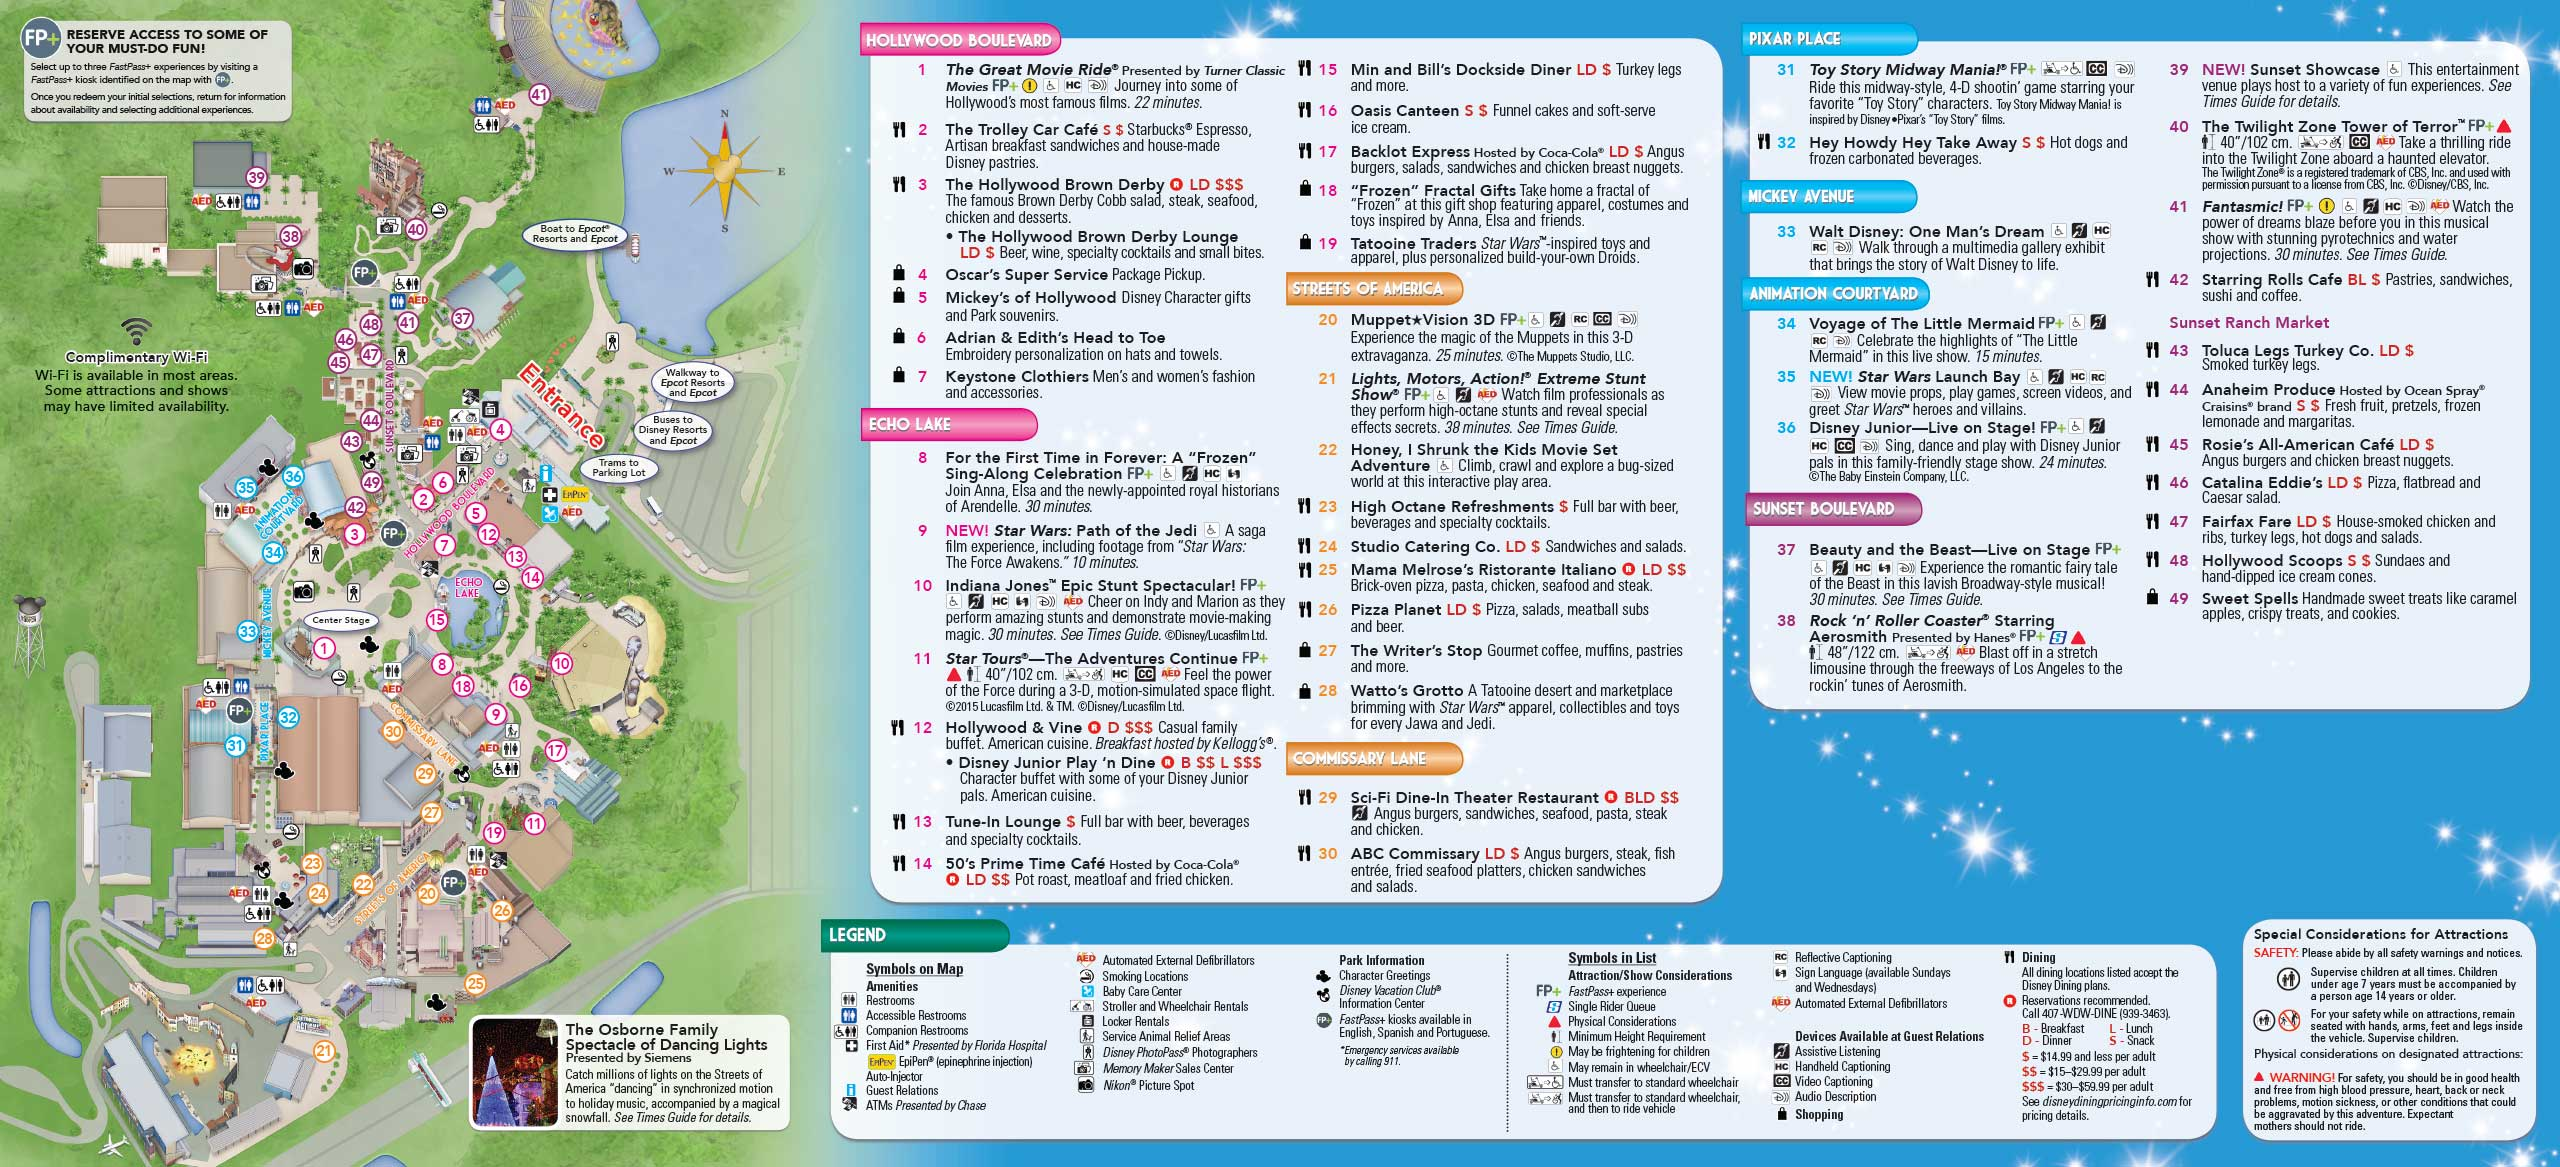 Disney\'s Hollywood Studios Guide Map December 2015 - Photo 2 of 2